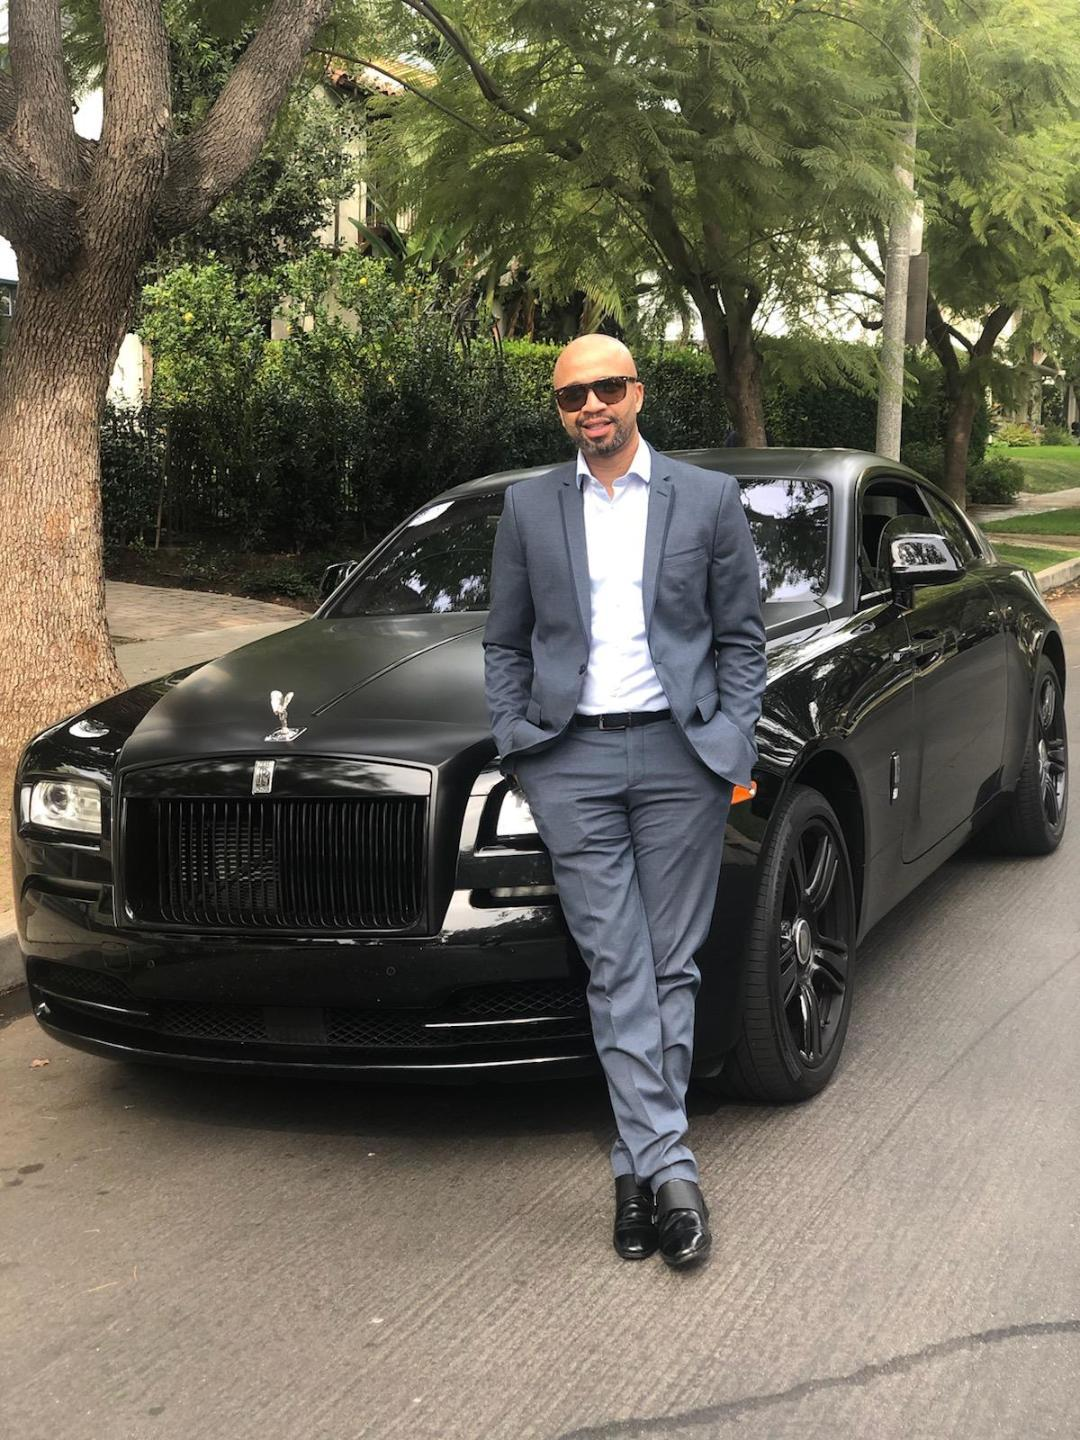 Posh Luxury Imports Announces The Launch Of Its Exotic And Luxury Car Venture Business Wire